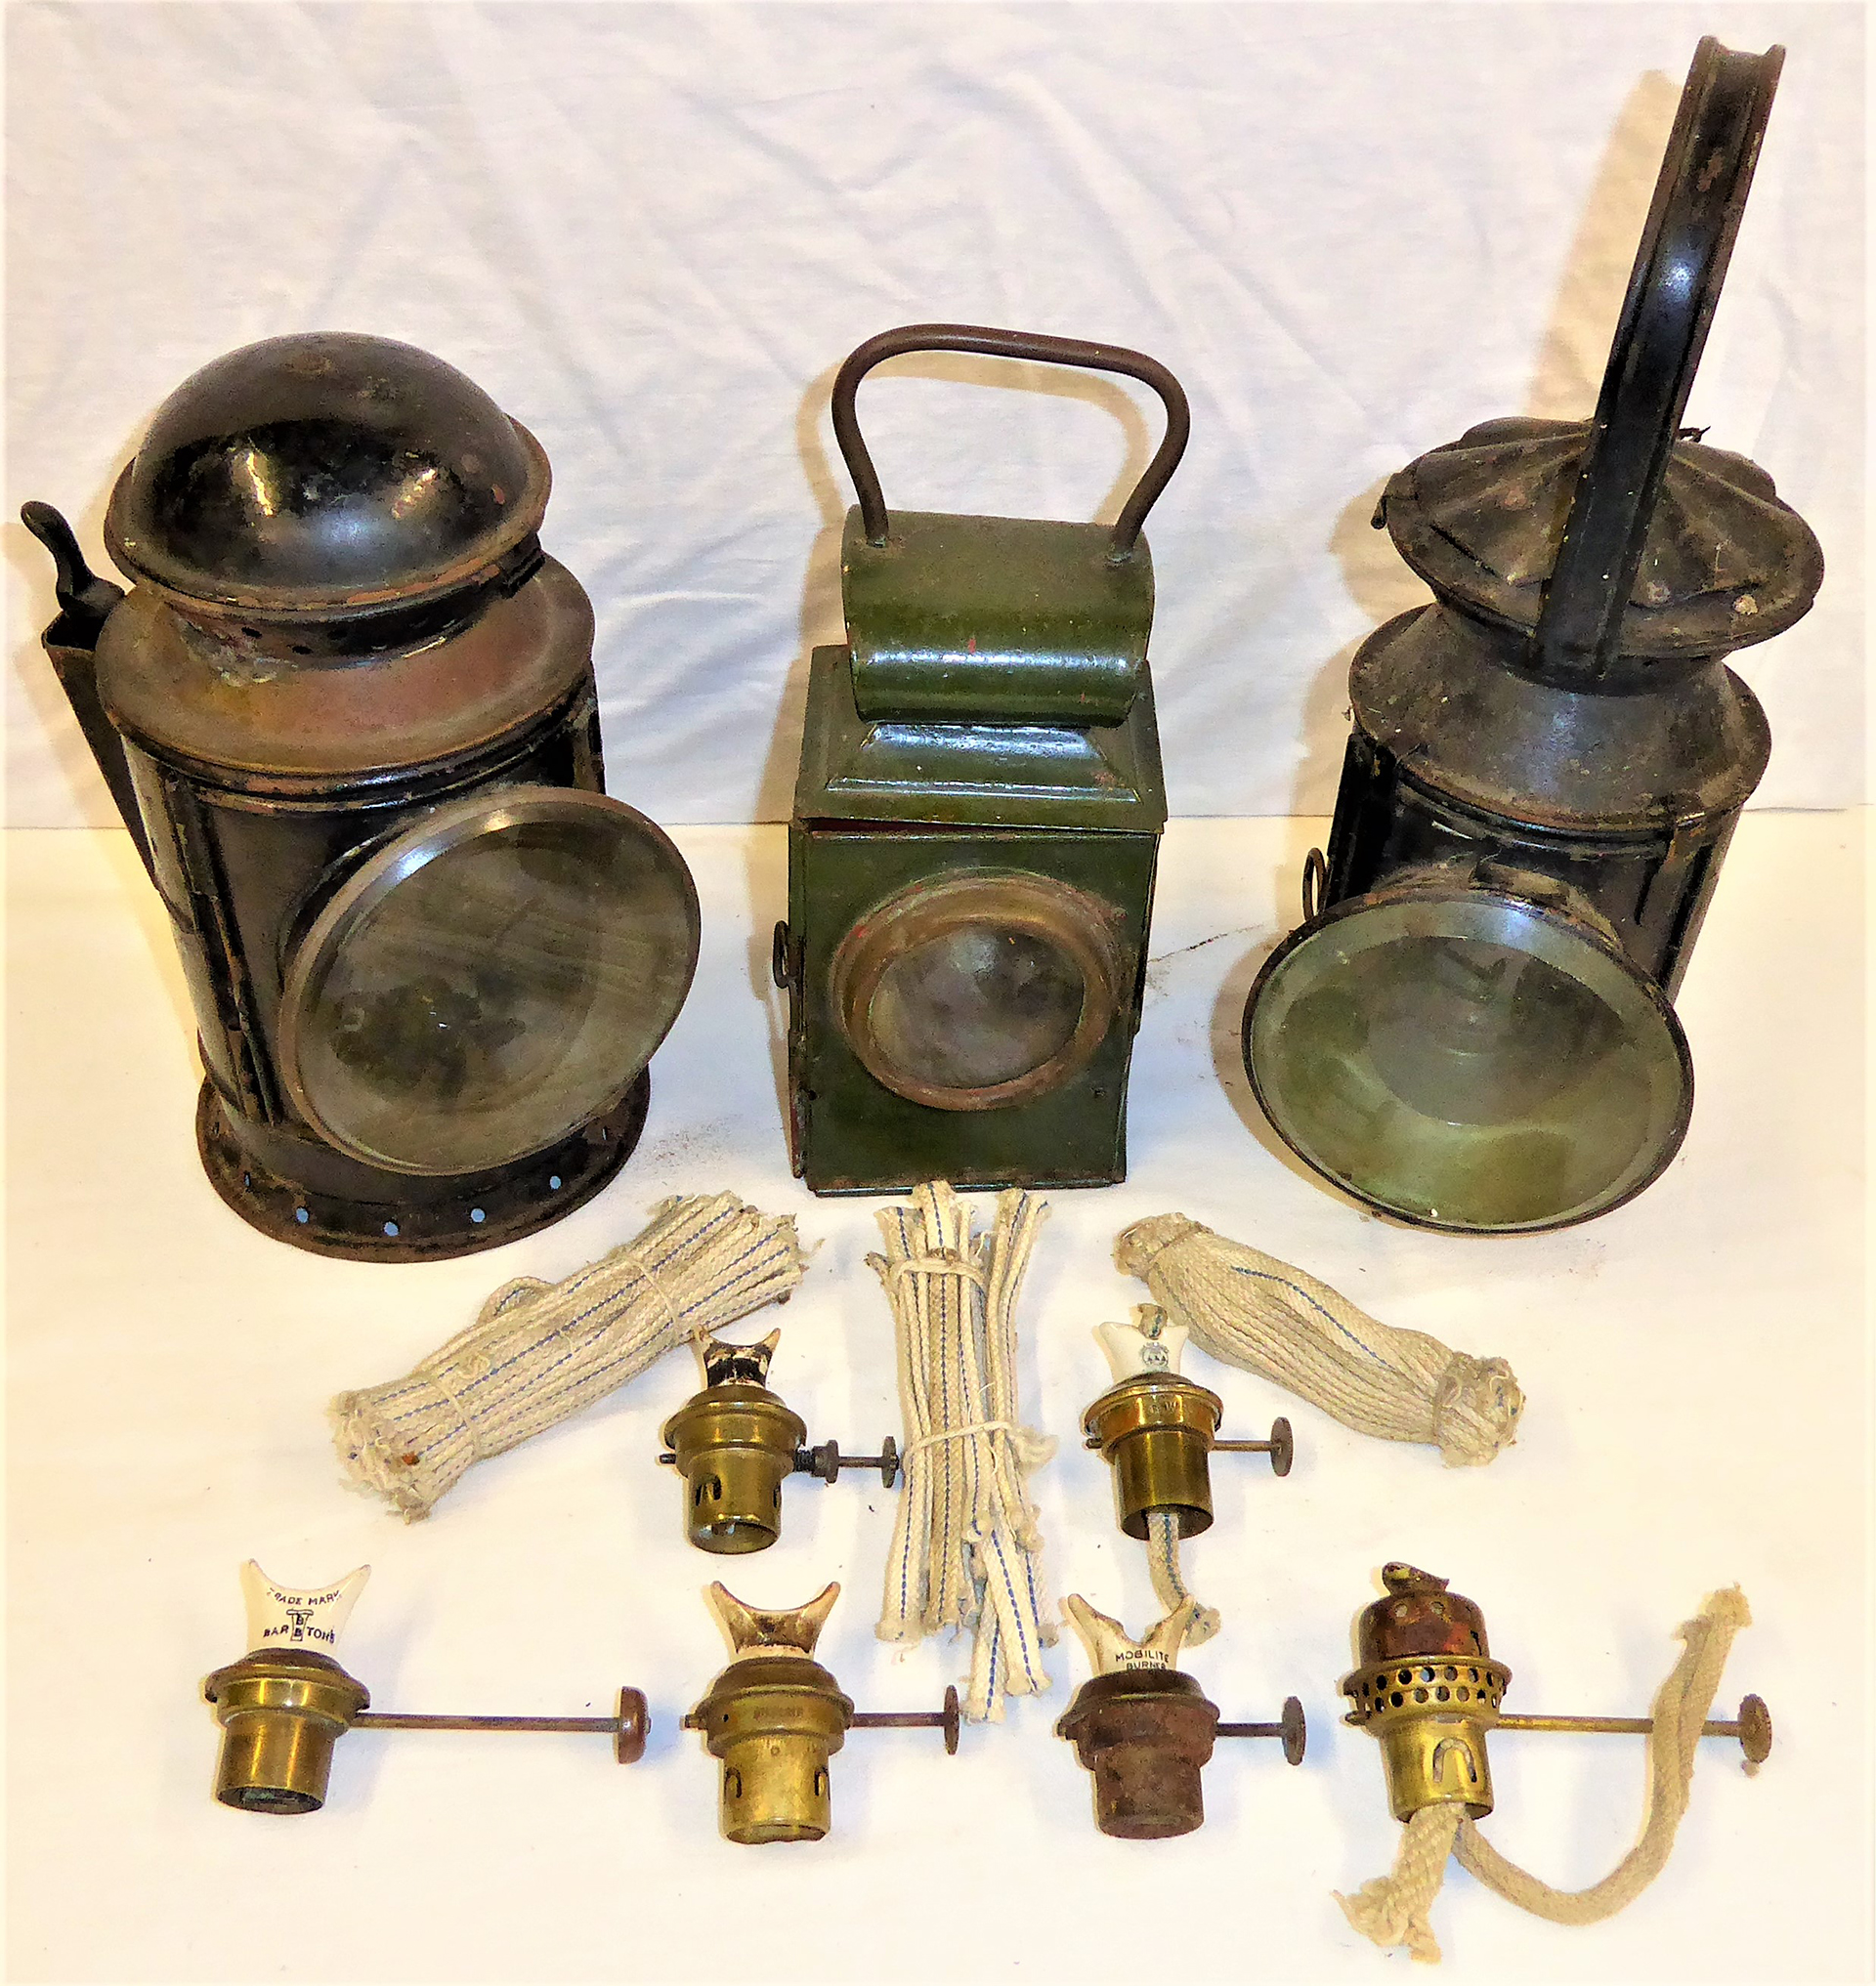 A collection of lamp spares to include hand lamp and signal lamp burners, wicks, together with 3 x